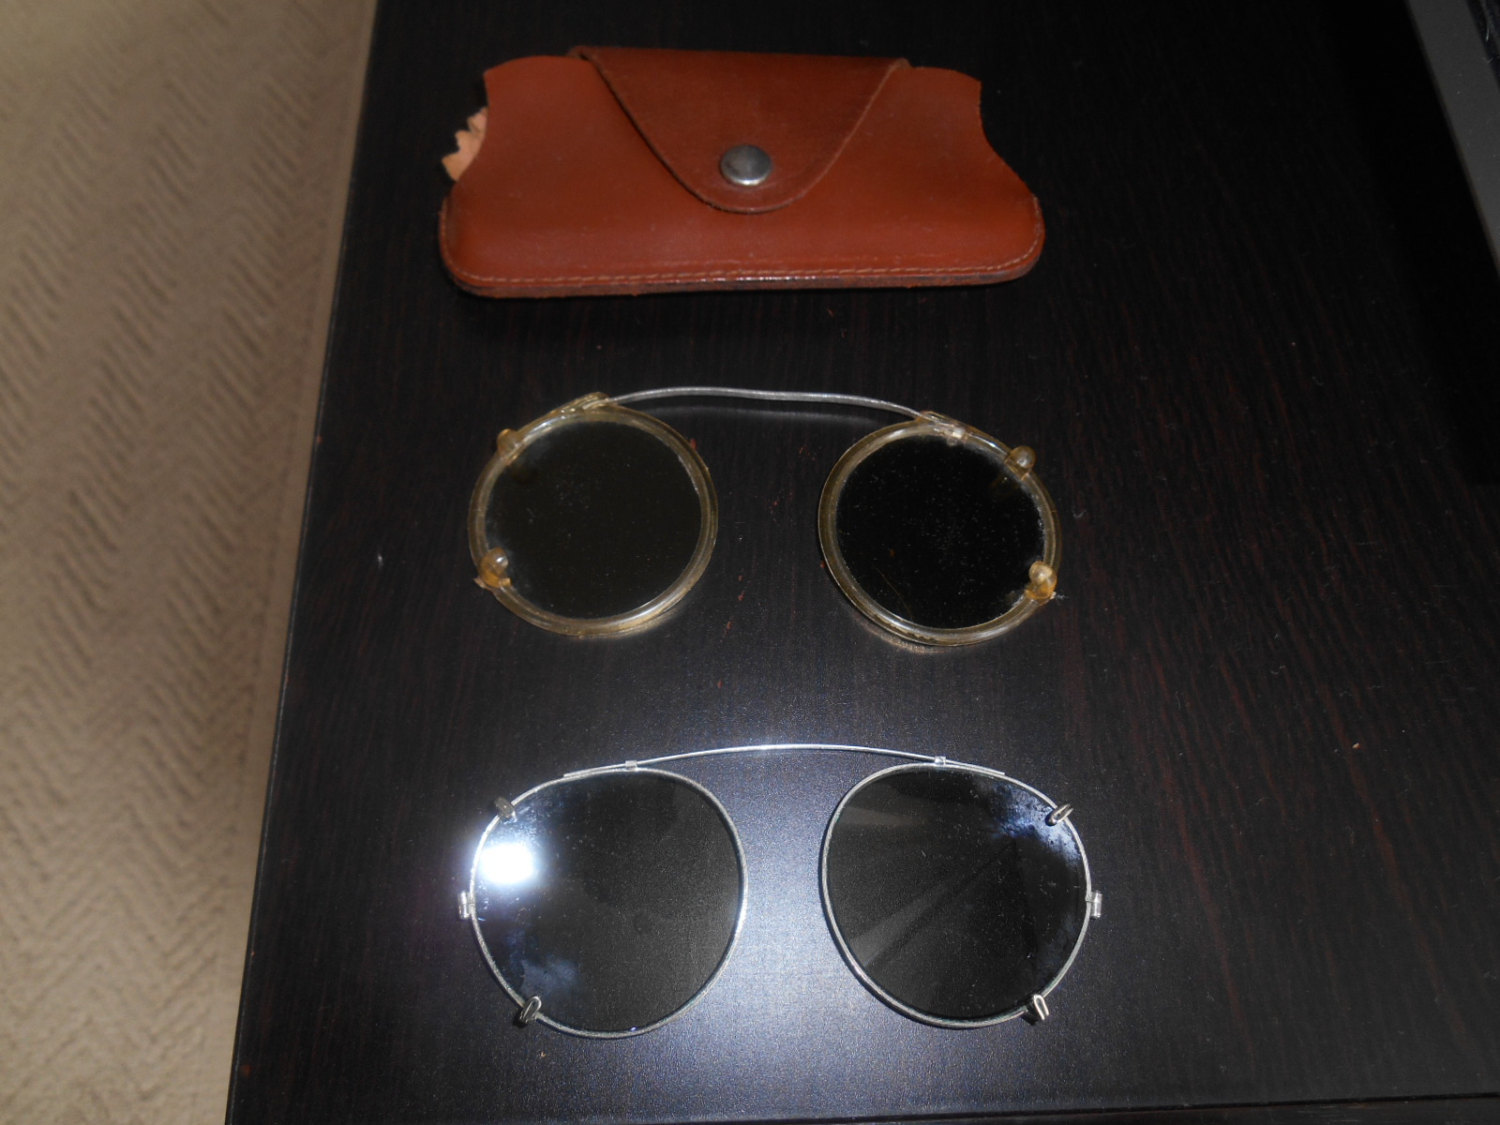 vgt 50's wire rim clip-on aviation sunglasses 2 lot with case green & grey tint